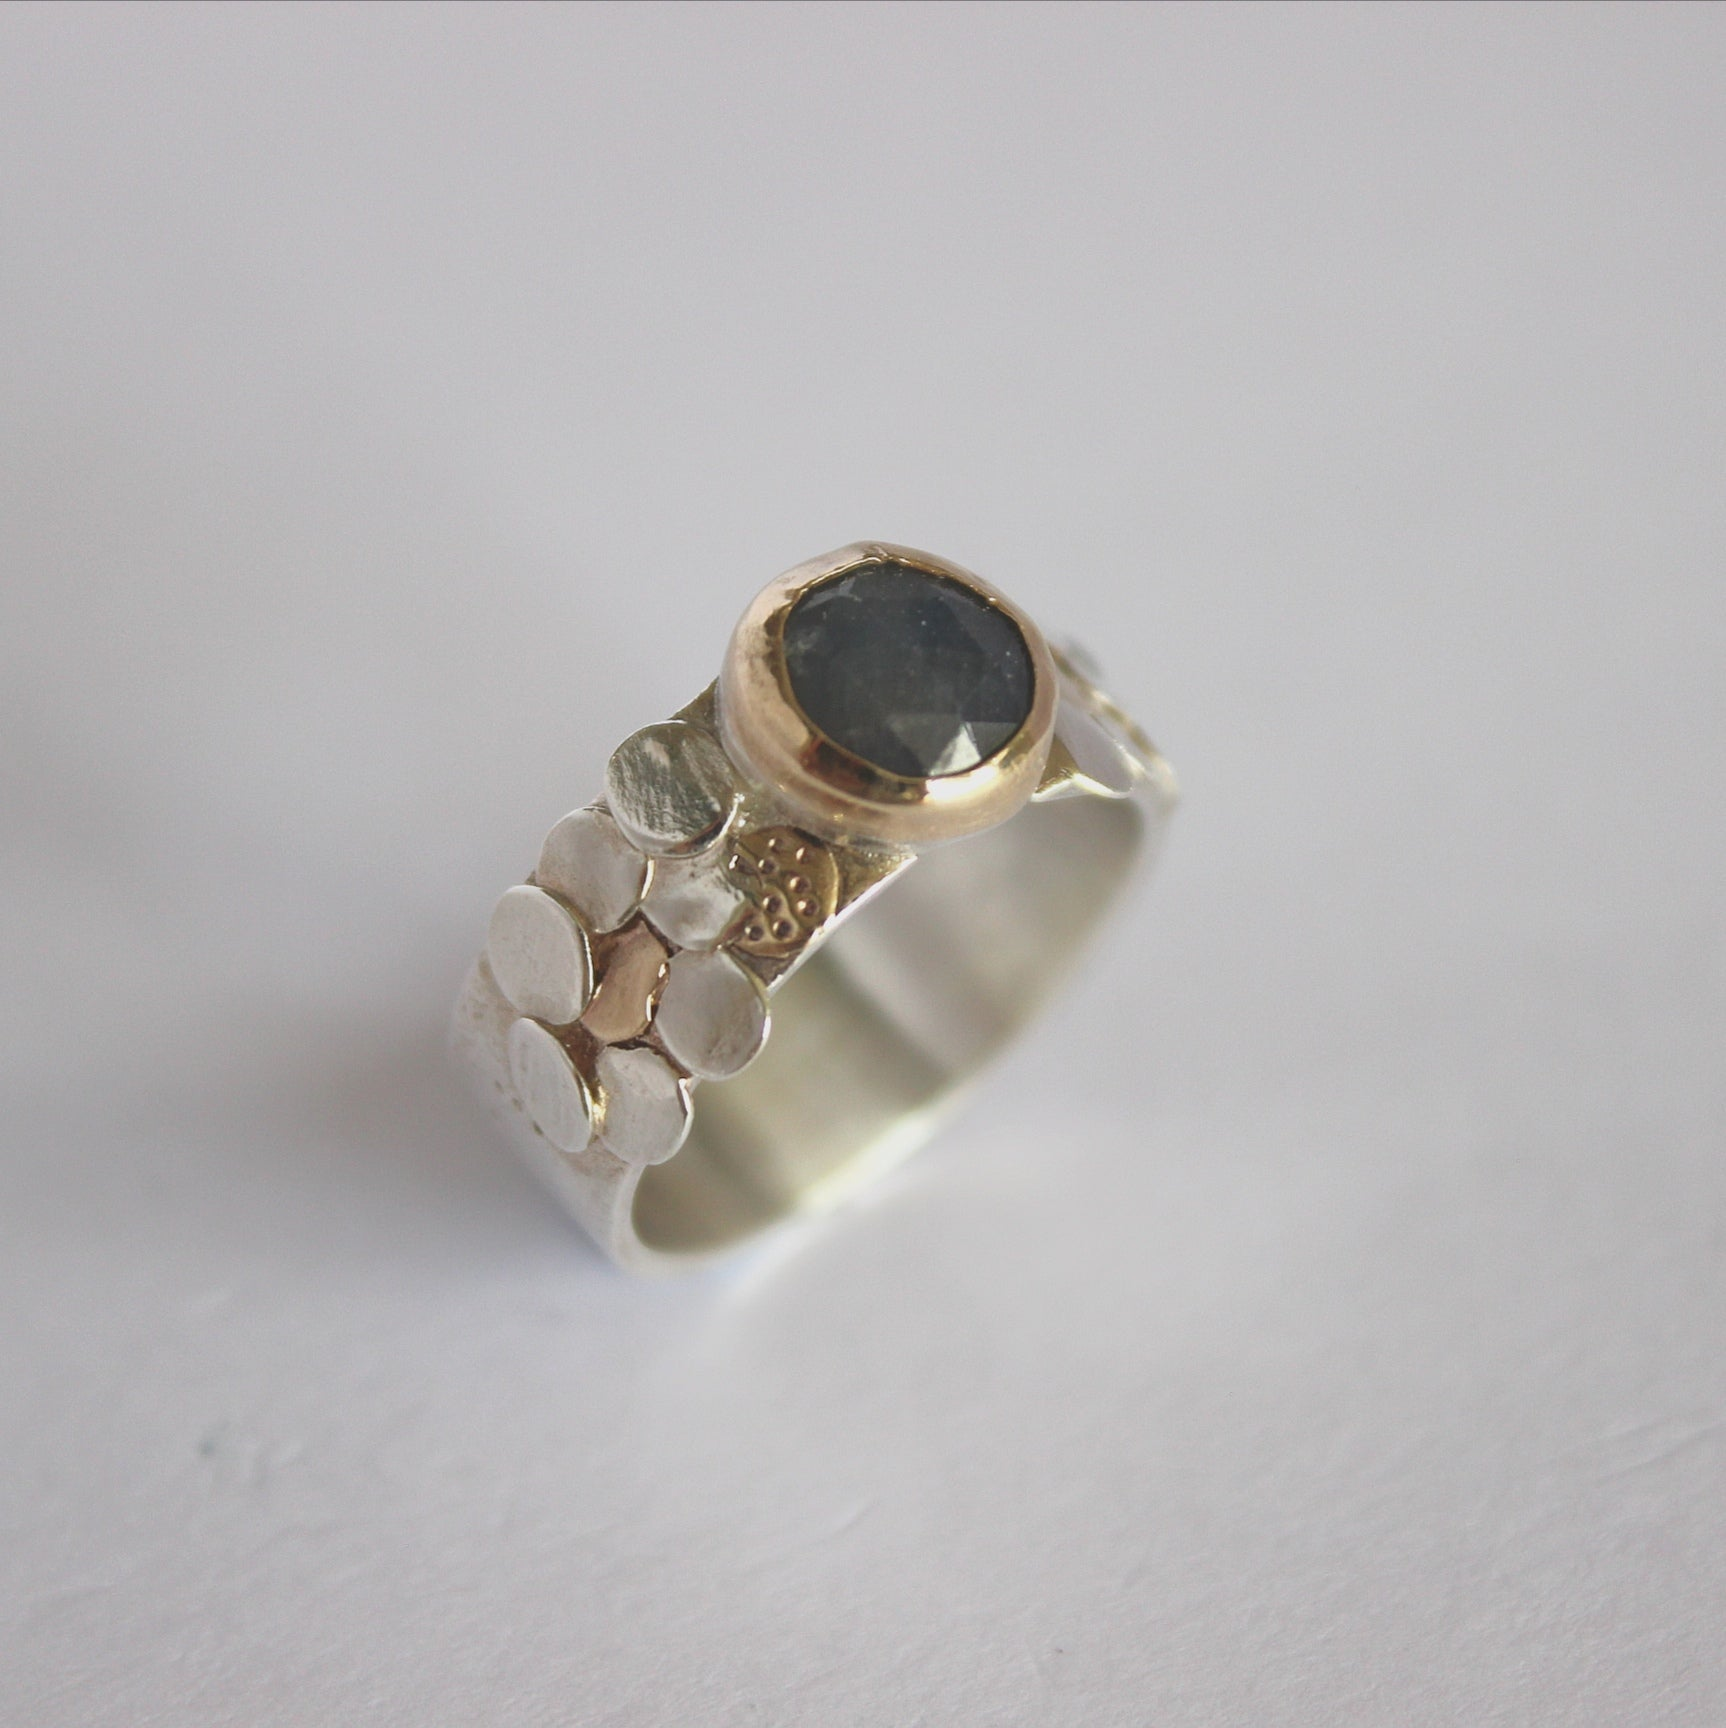 Deep blue sapphire ring with silver and gold scales